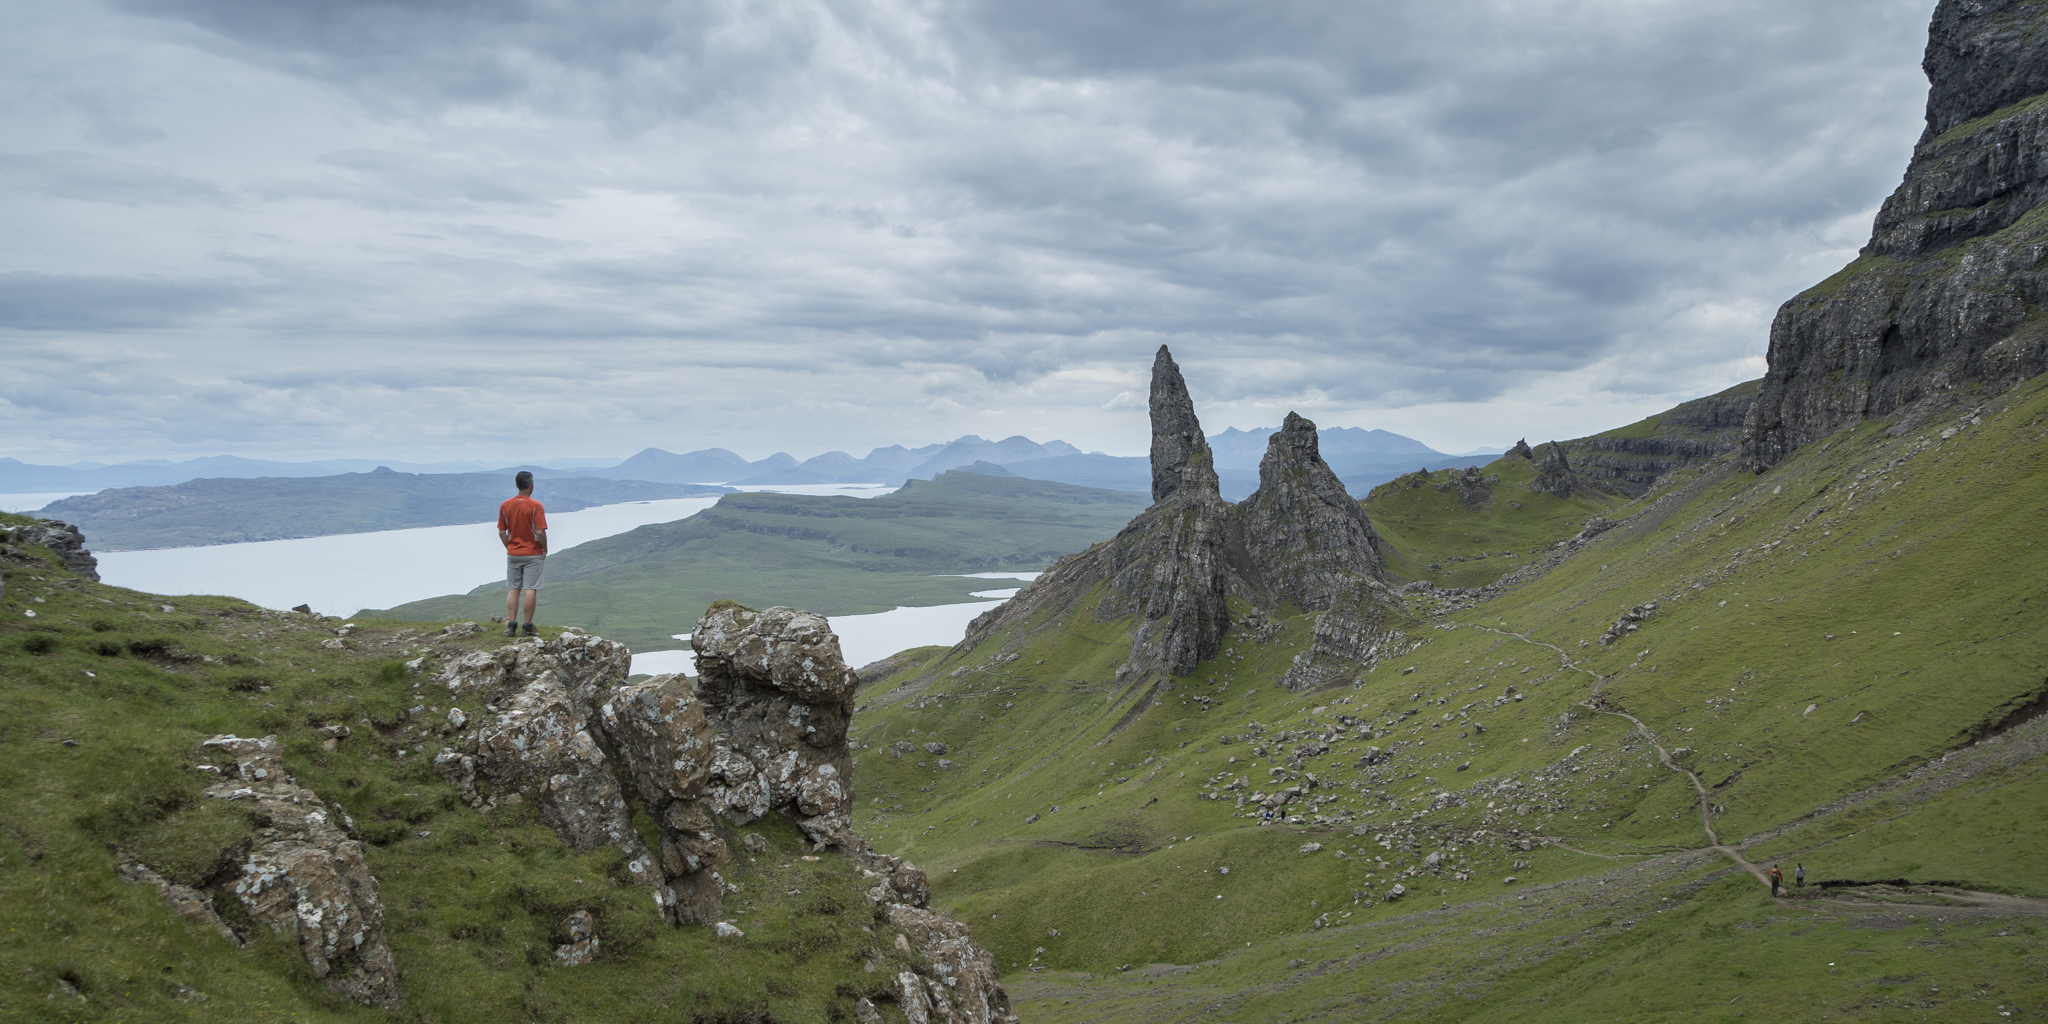 Looking out over the Old Man of Storr